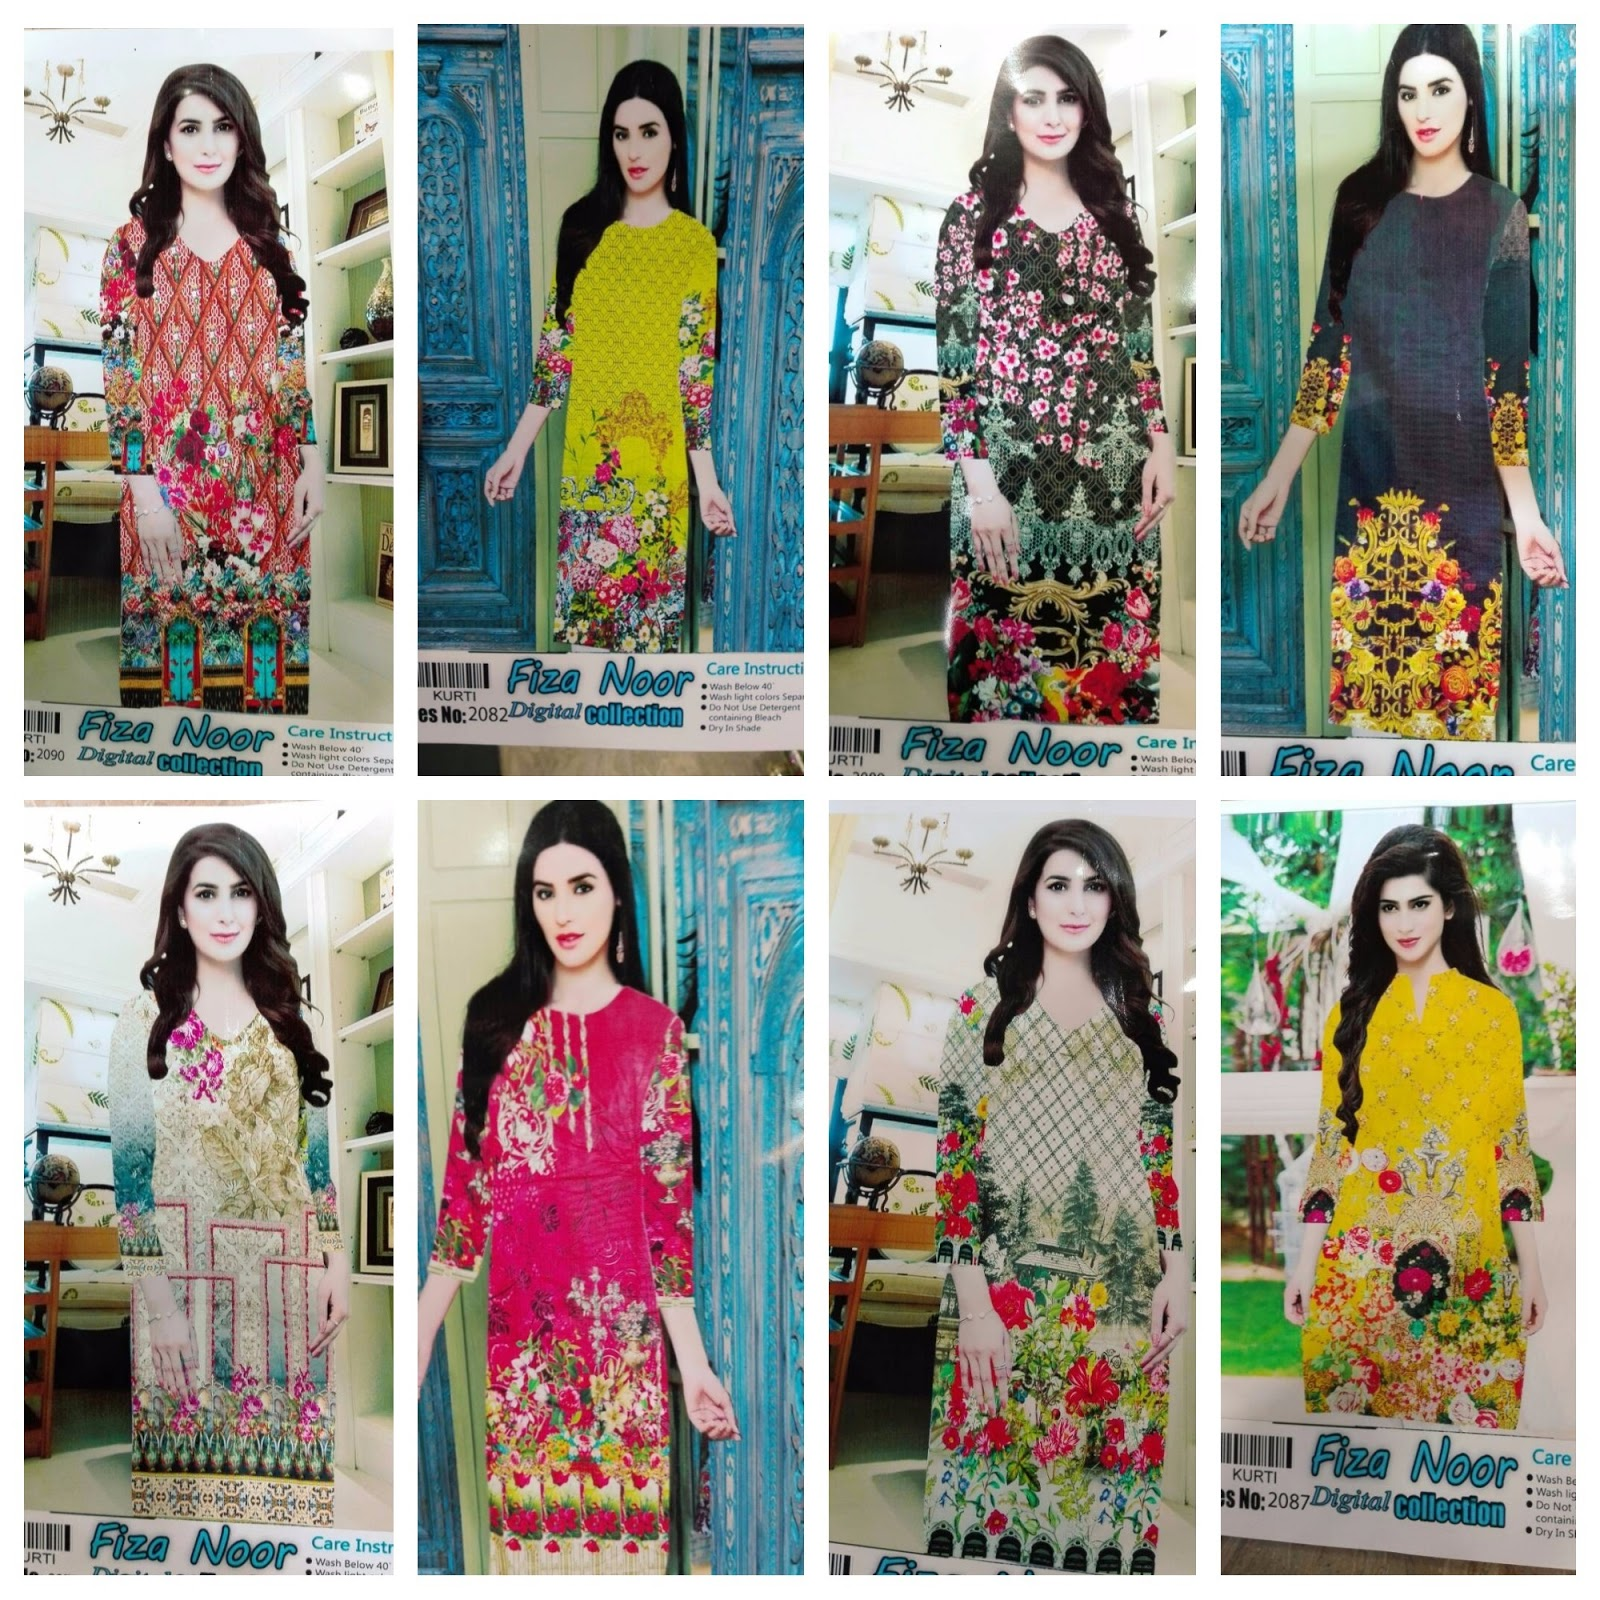 583c936ef8 Faisalabad Fabric Store is a manufacturer of ladies clothing having turning  print, digital print and embroidered capability. Faisalabad Fabric Store is  ...